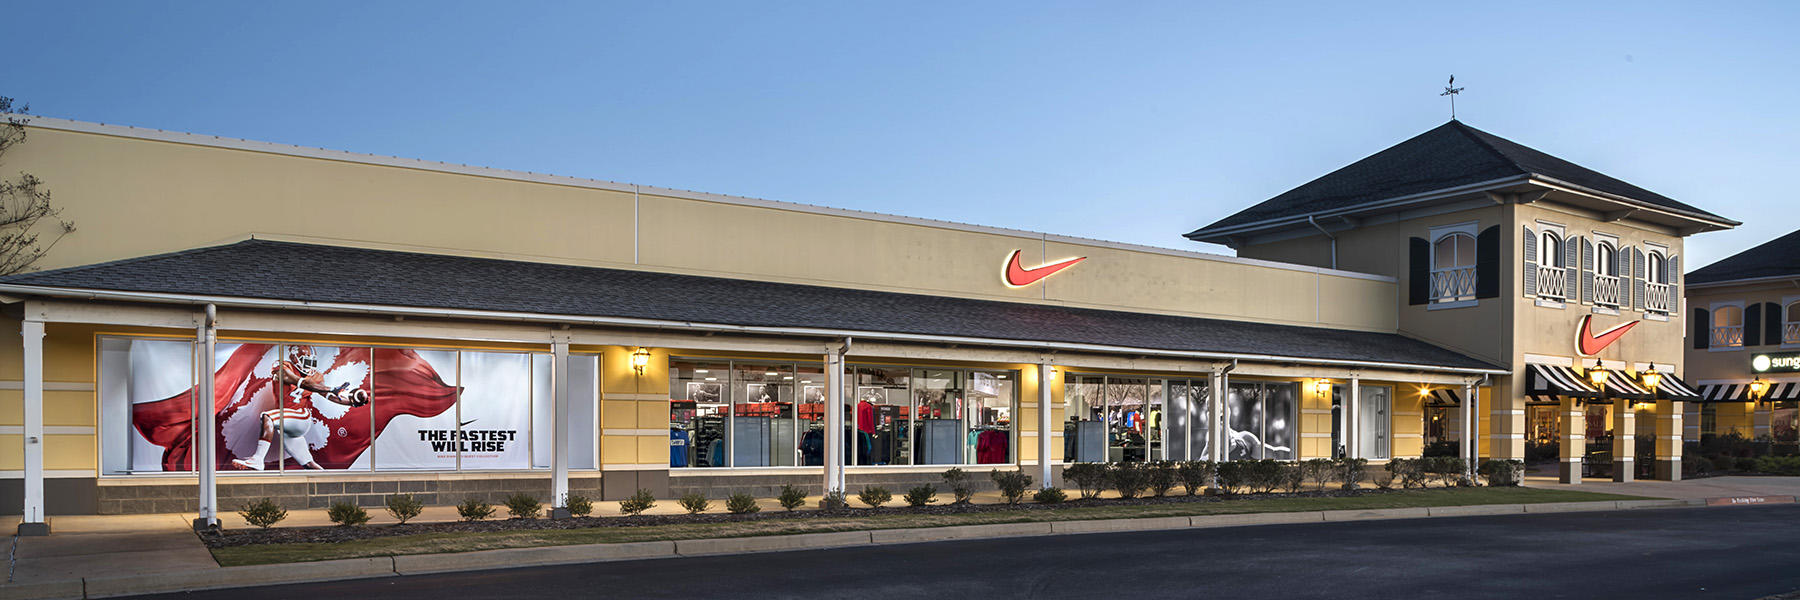 nike outlet gaffney sc jobs